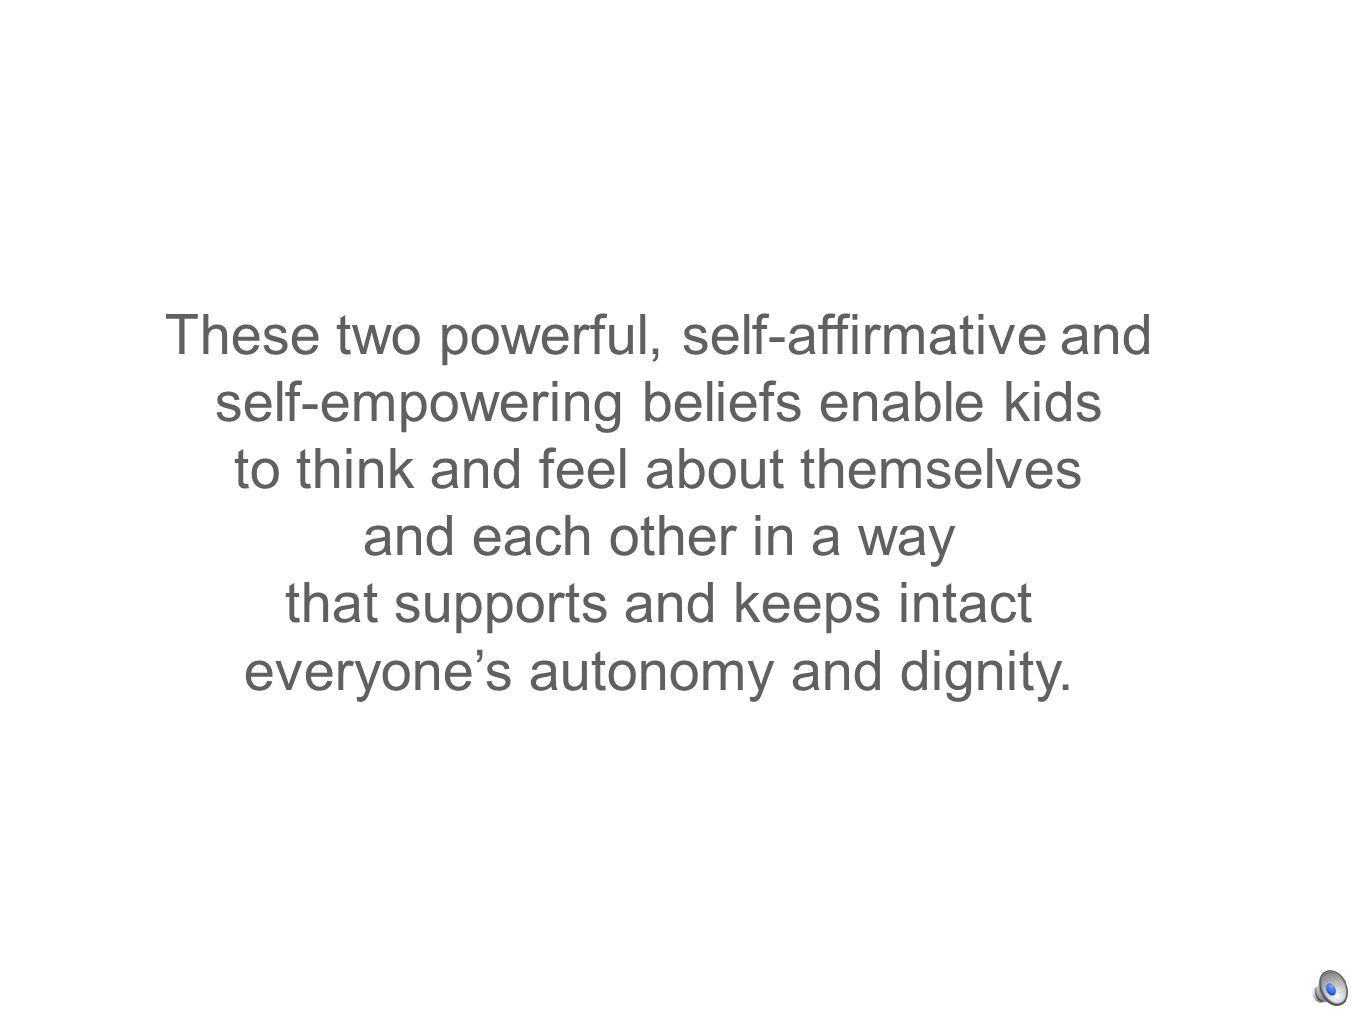 These two powerful, self-affirmative and self-empowering beliefs enable kids to think and feel about themselves and each other in a way that supports and keeps intact everyones autonomy and dignity.